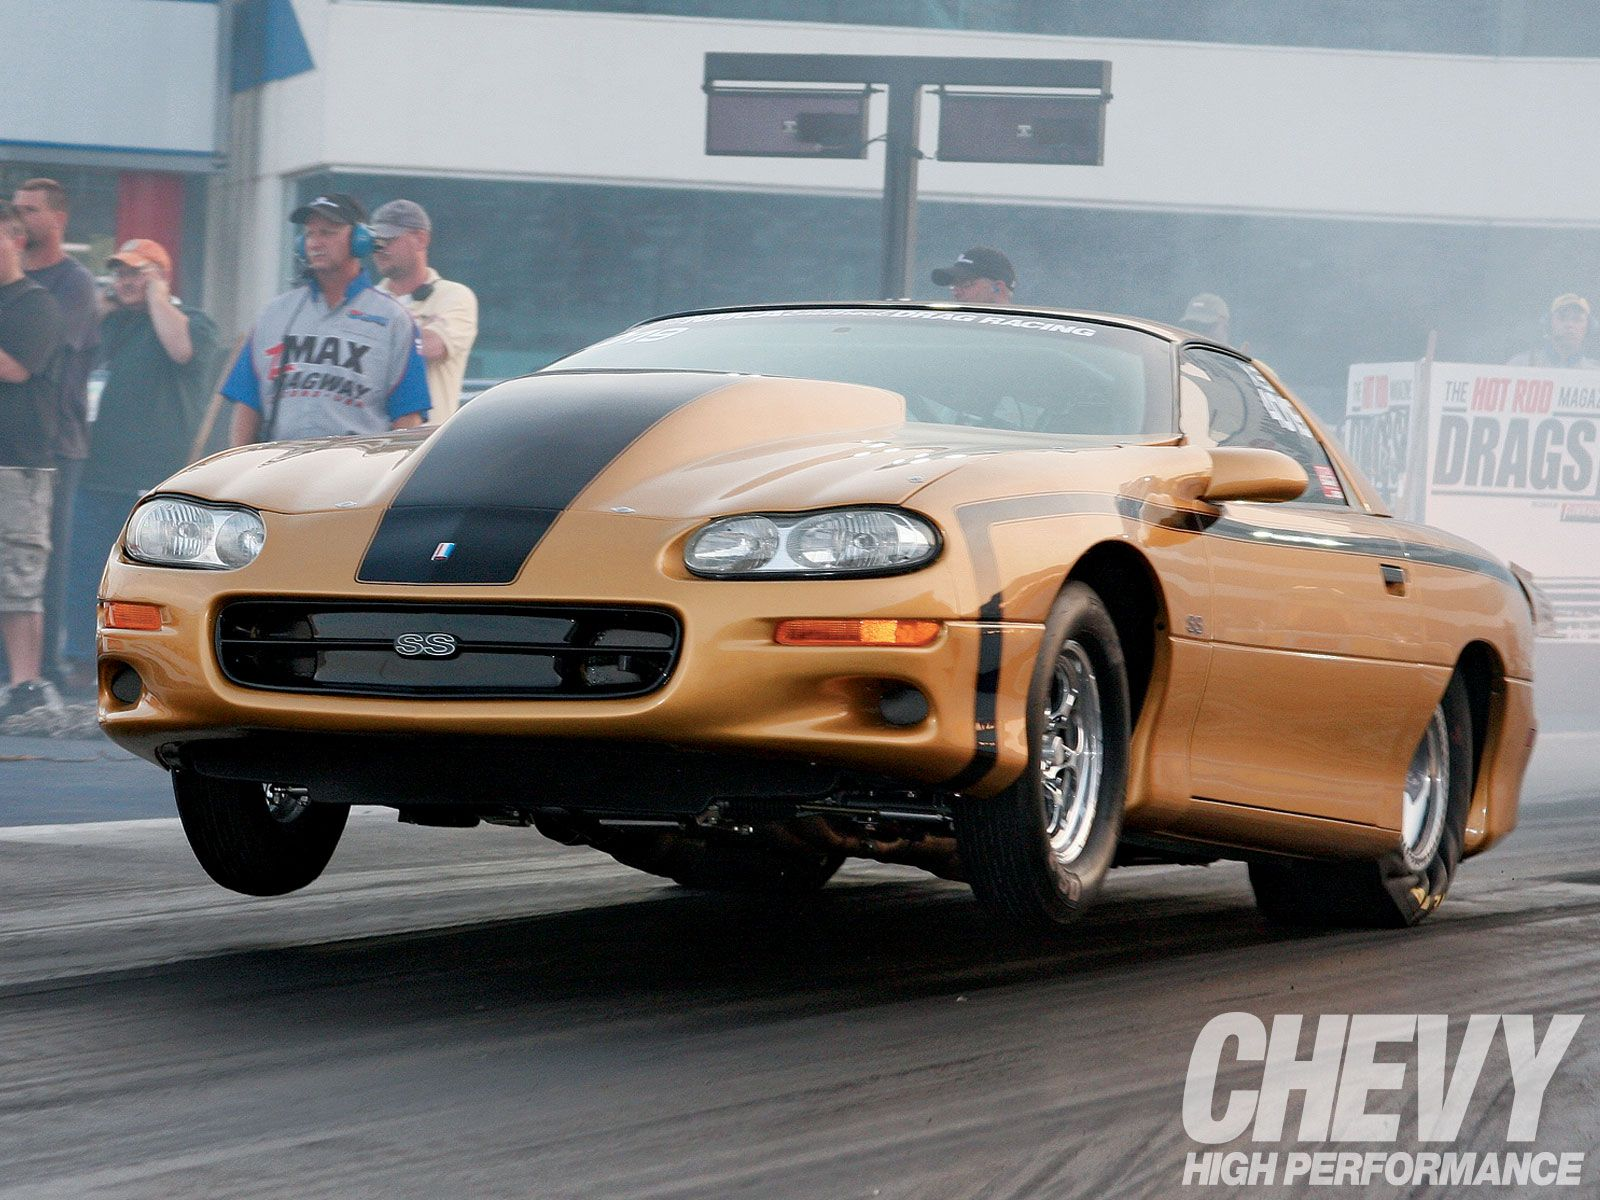 drag racing | Nmca Xtreme Street Event Coverage Pontiac Drag Race ...